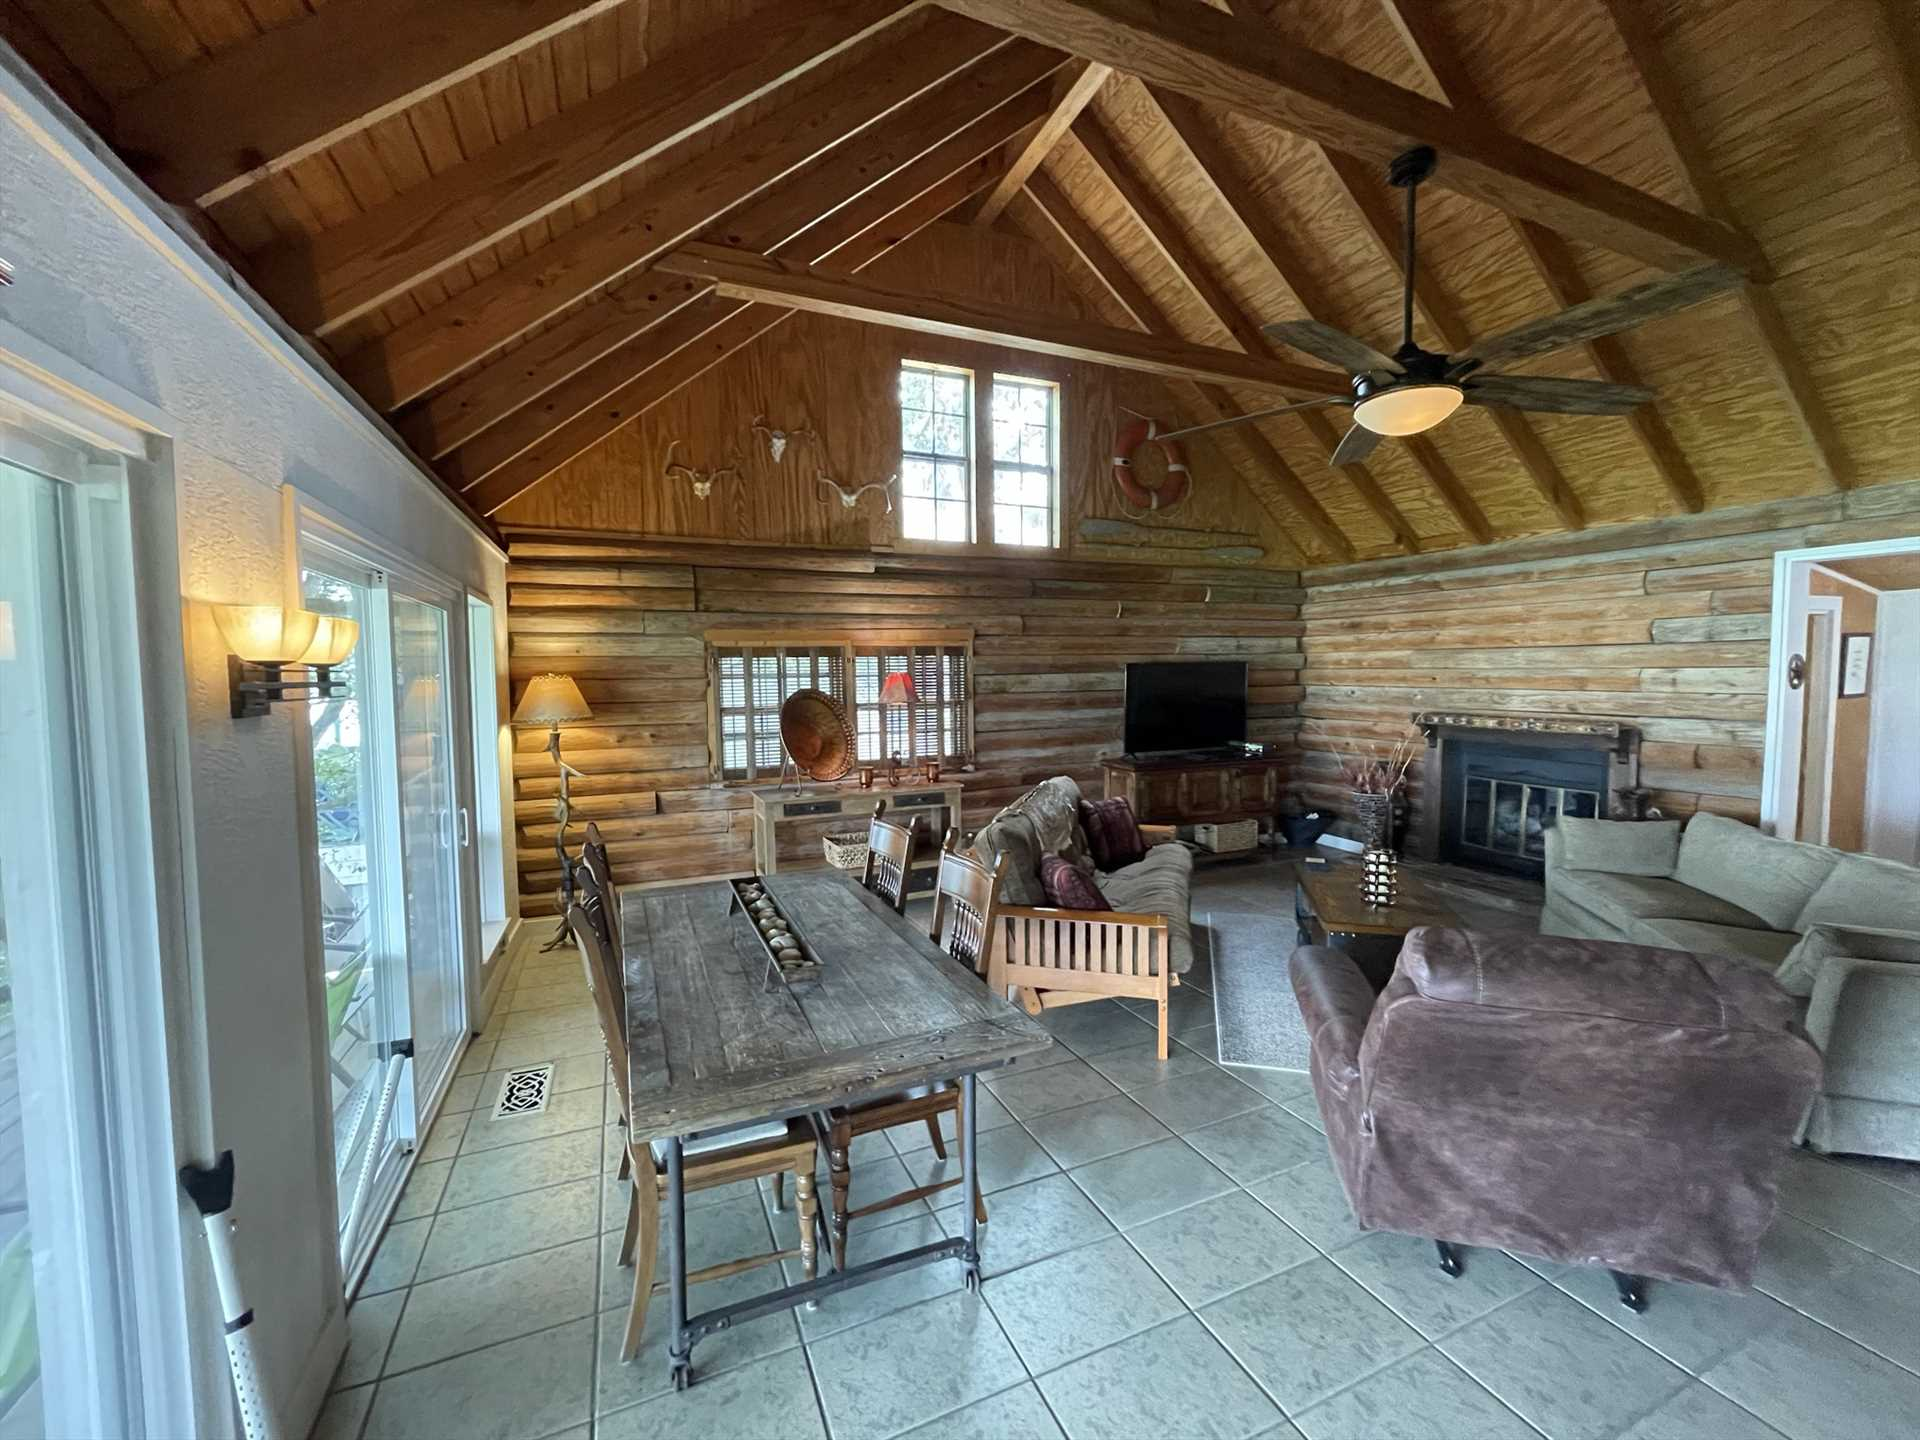 Beautiful beamed and vaulted ceilings highlight the ample and friendly space of the living area.